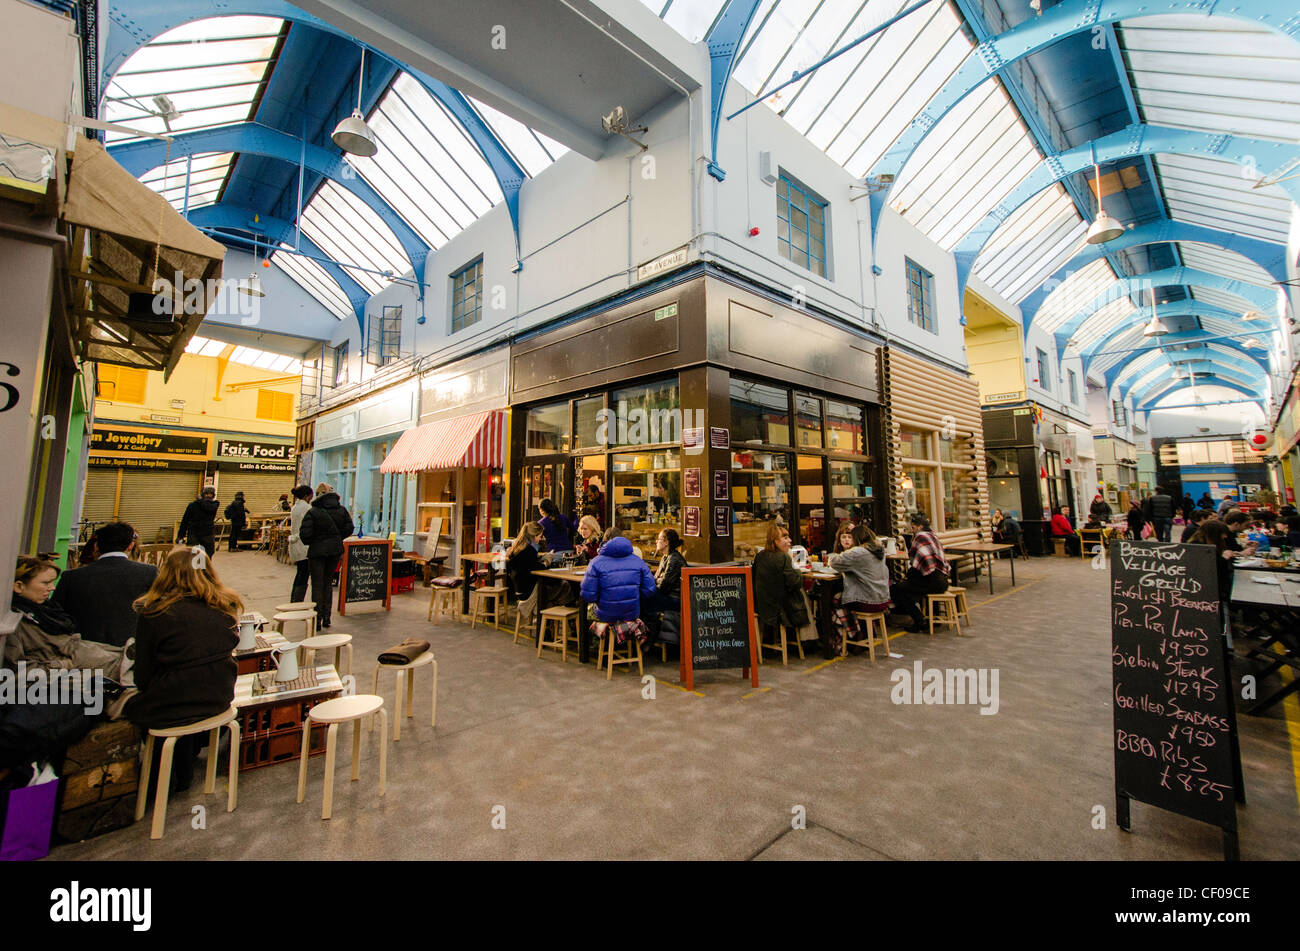 Granville Arcade Brixton Village newly renovated in Brixton indoor market South London England Great Britain UK - Stock Image